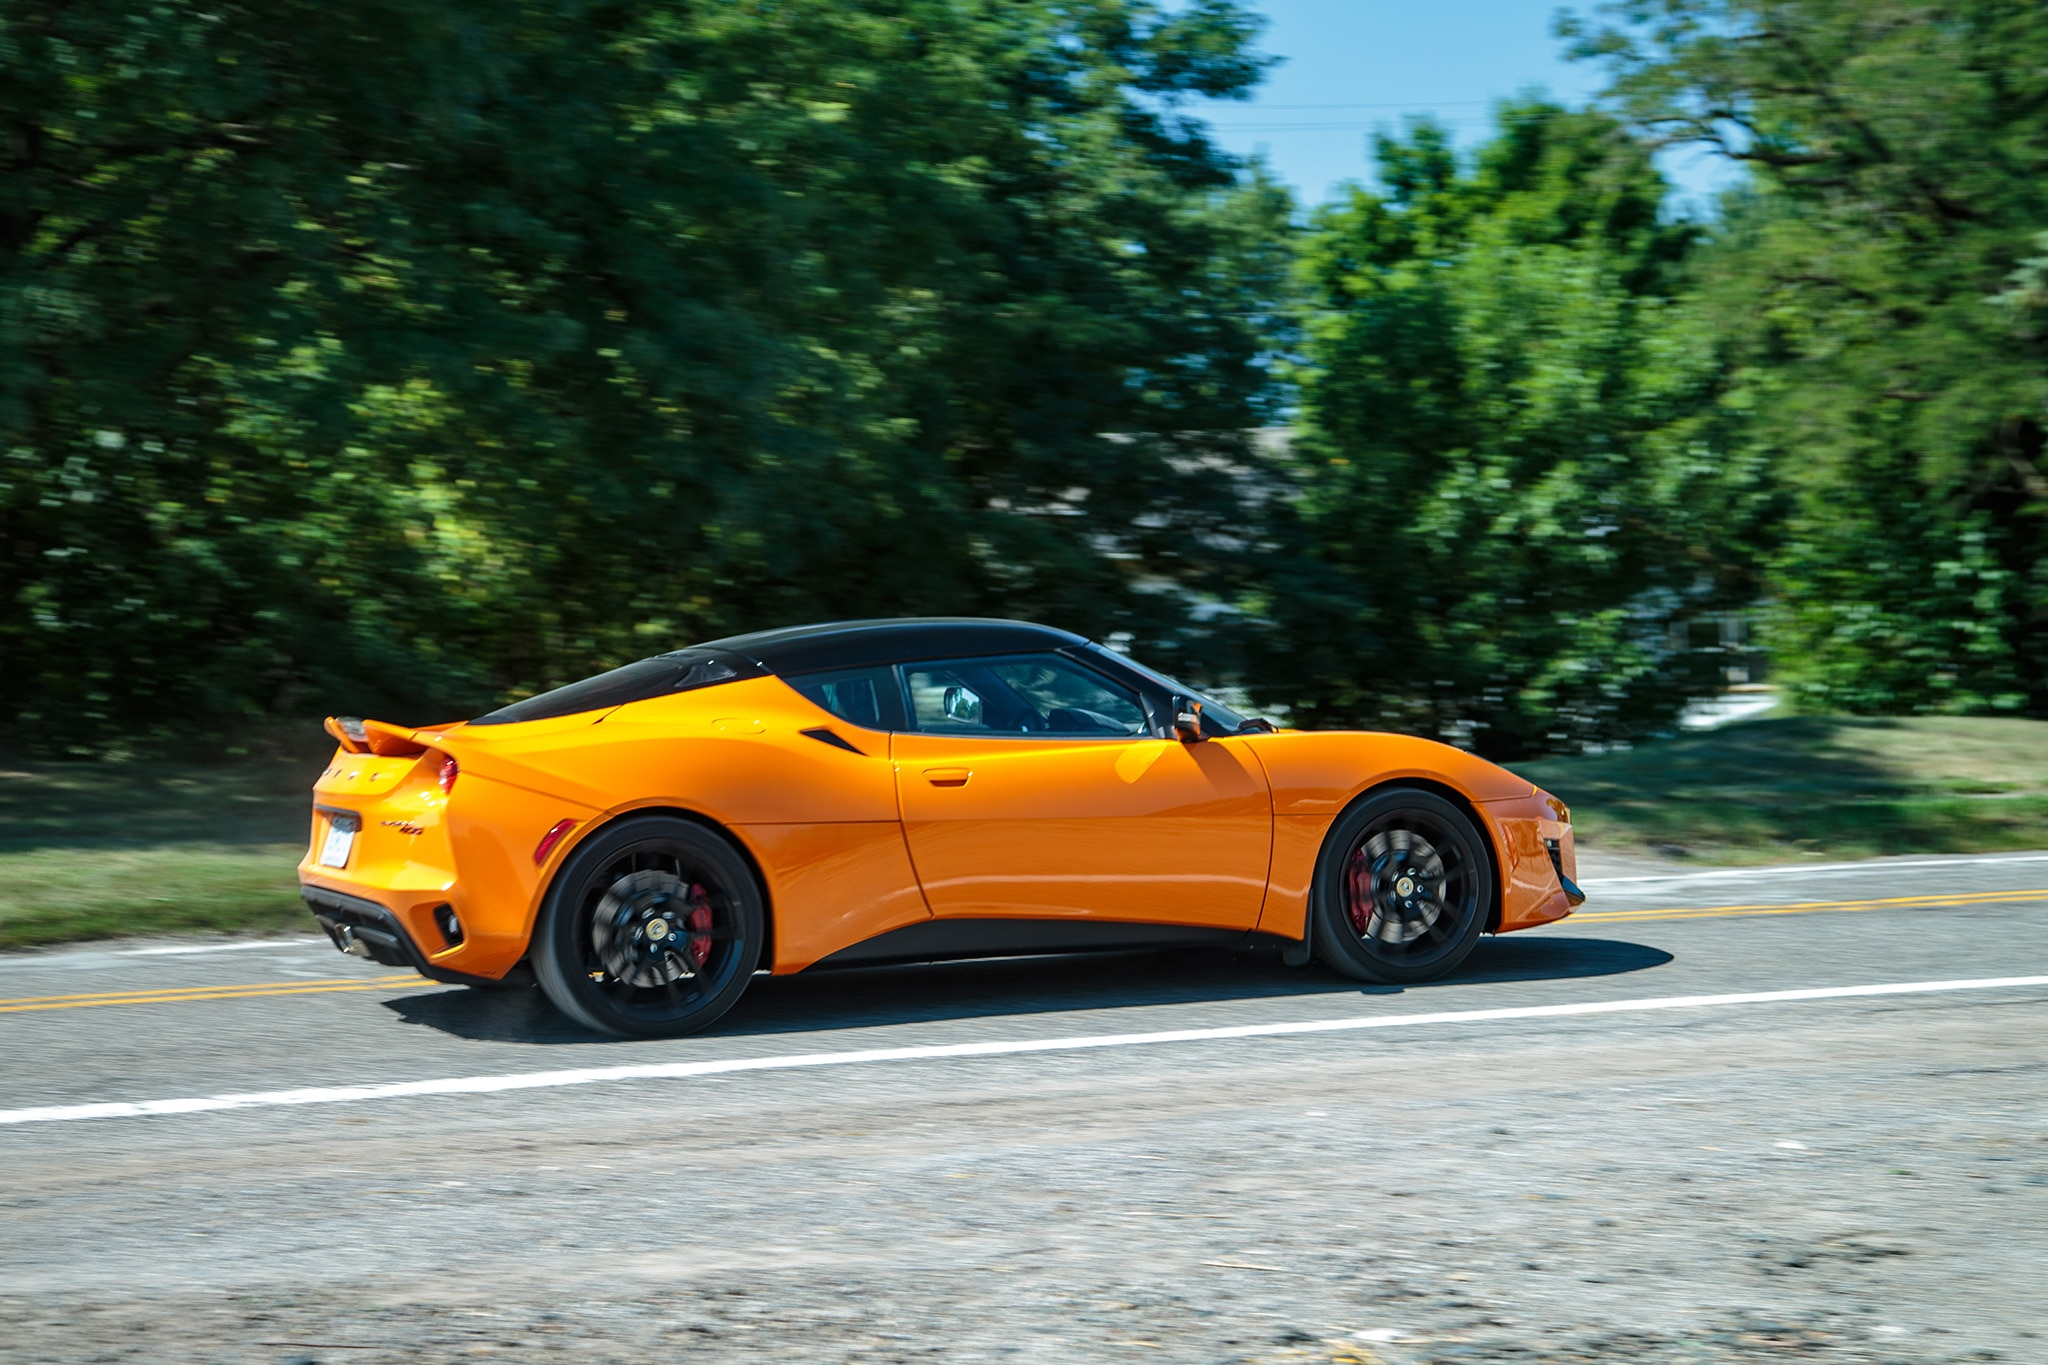 2017 Lotus Evora 400 Rear Three Quarter In Motion 08